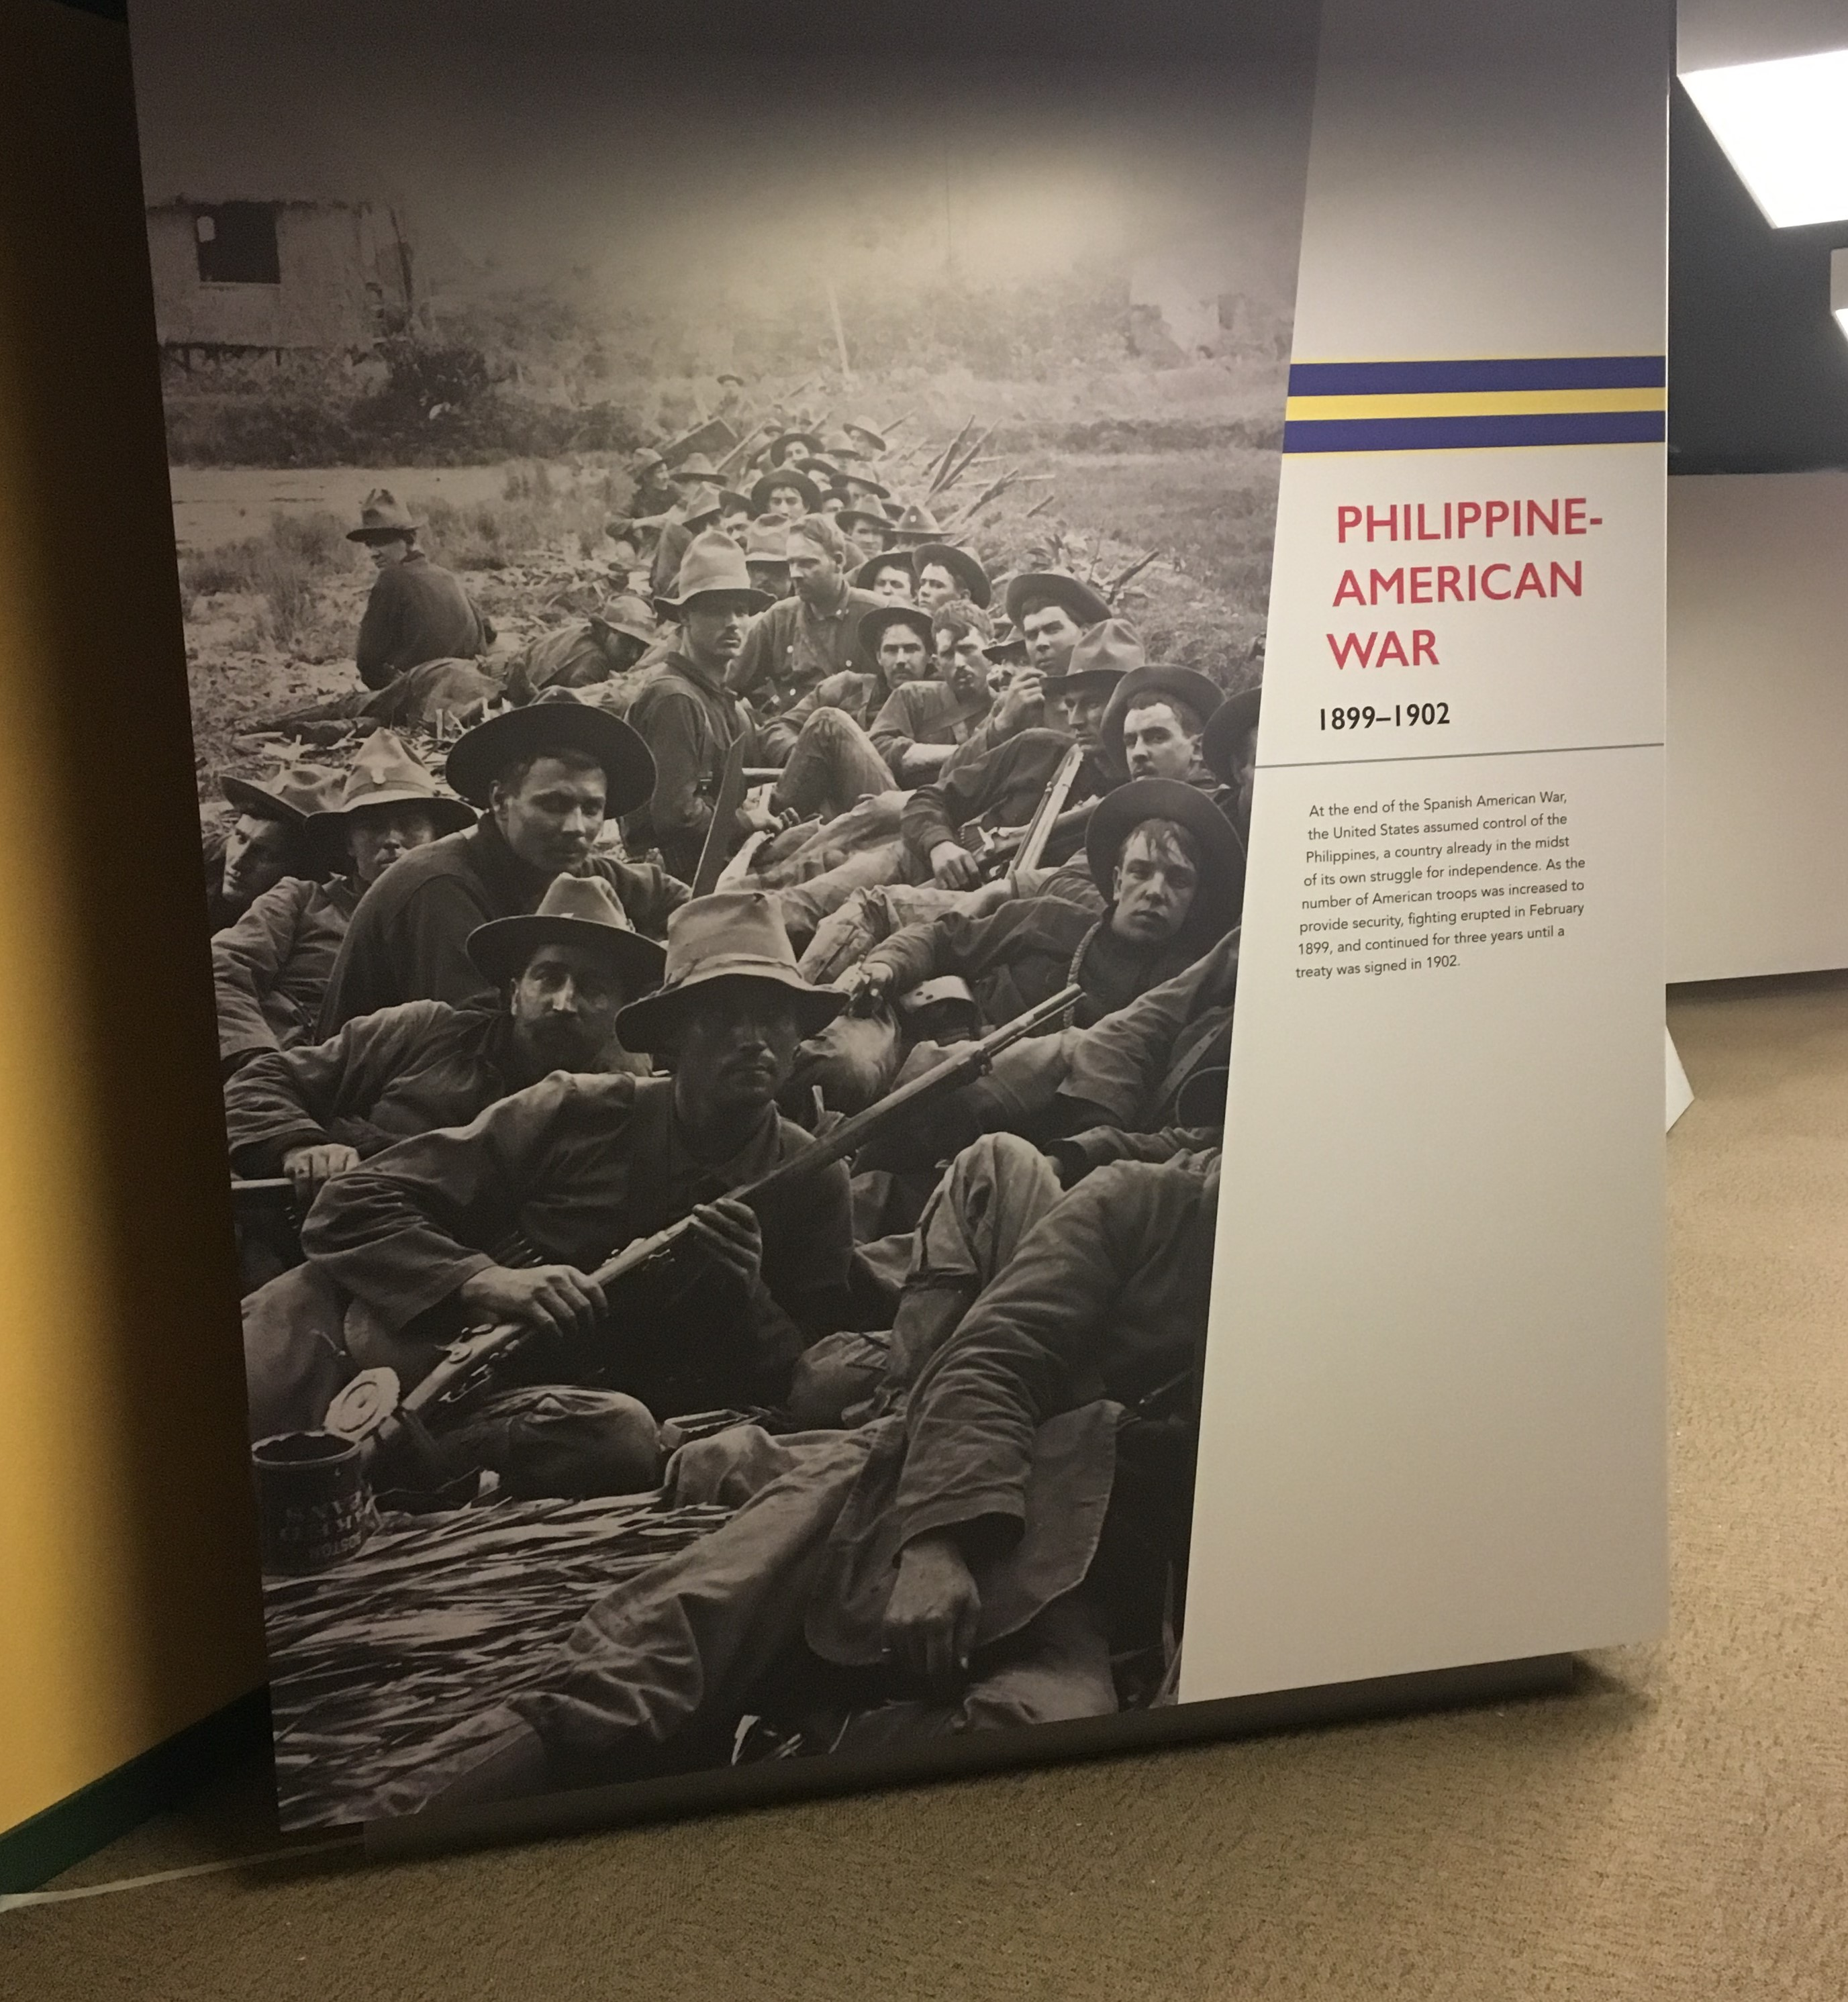 philippine-american war essay War of philippine independence essay - war of philippine independence filipinos are equally heirs to a second great missionary enterprise after spanish: united states .